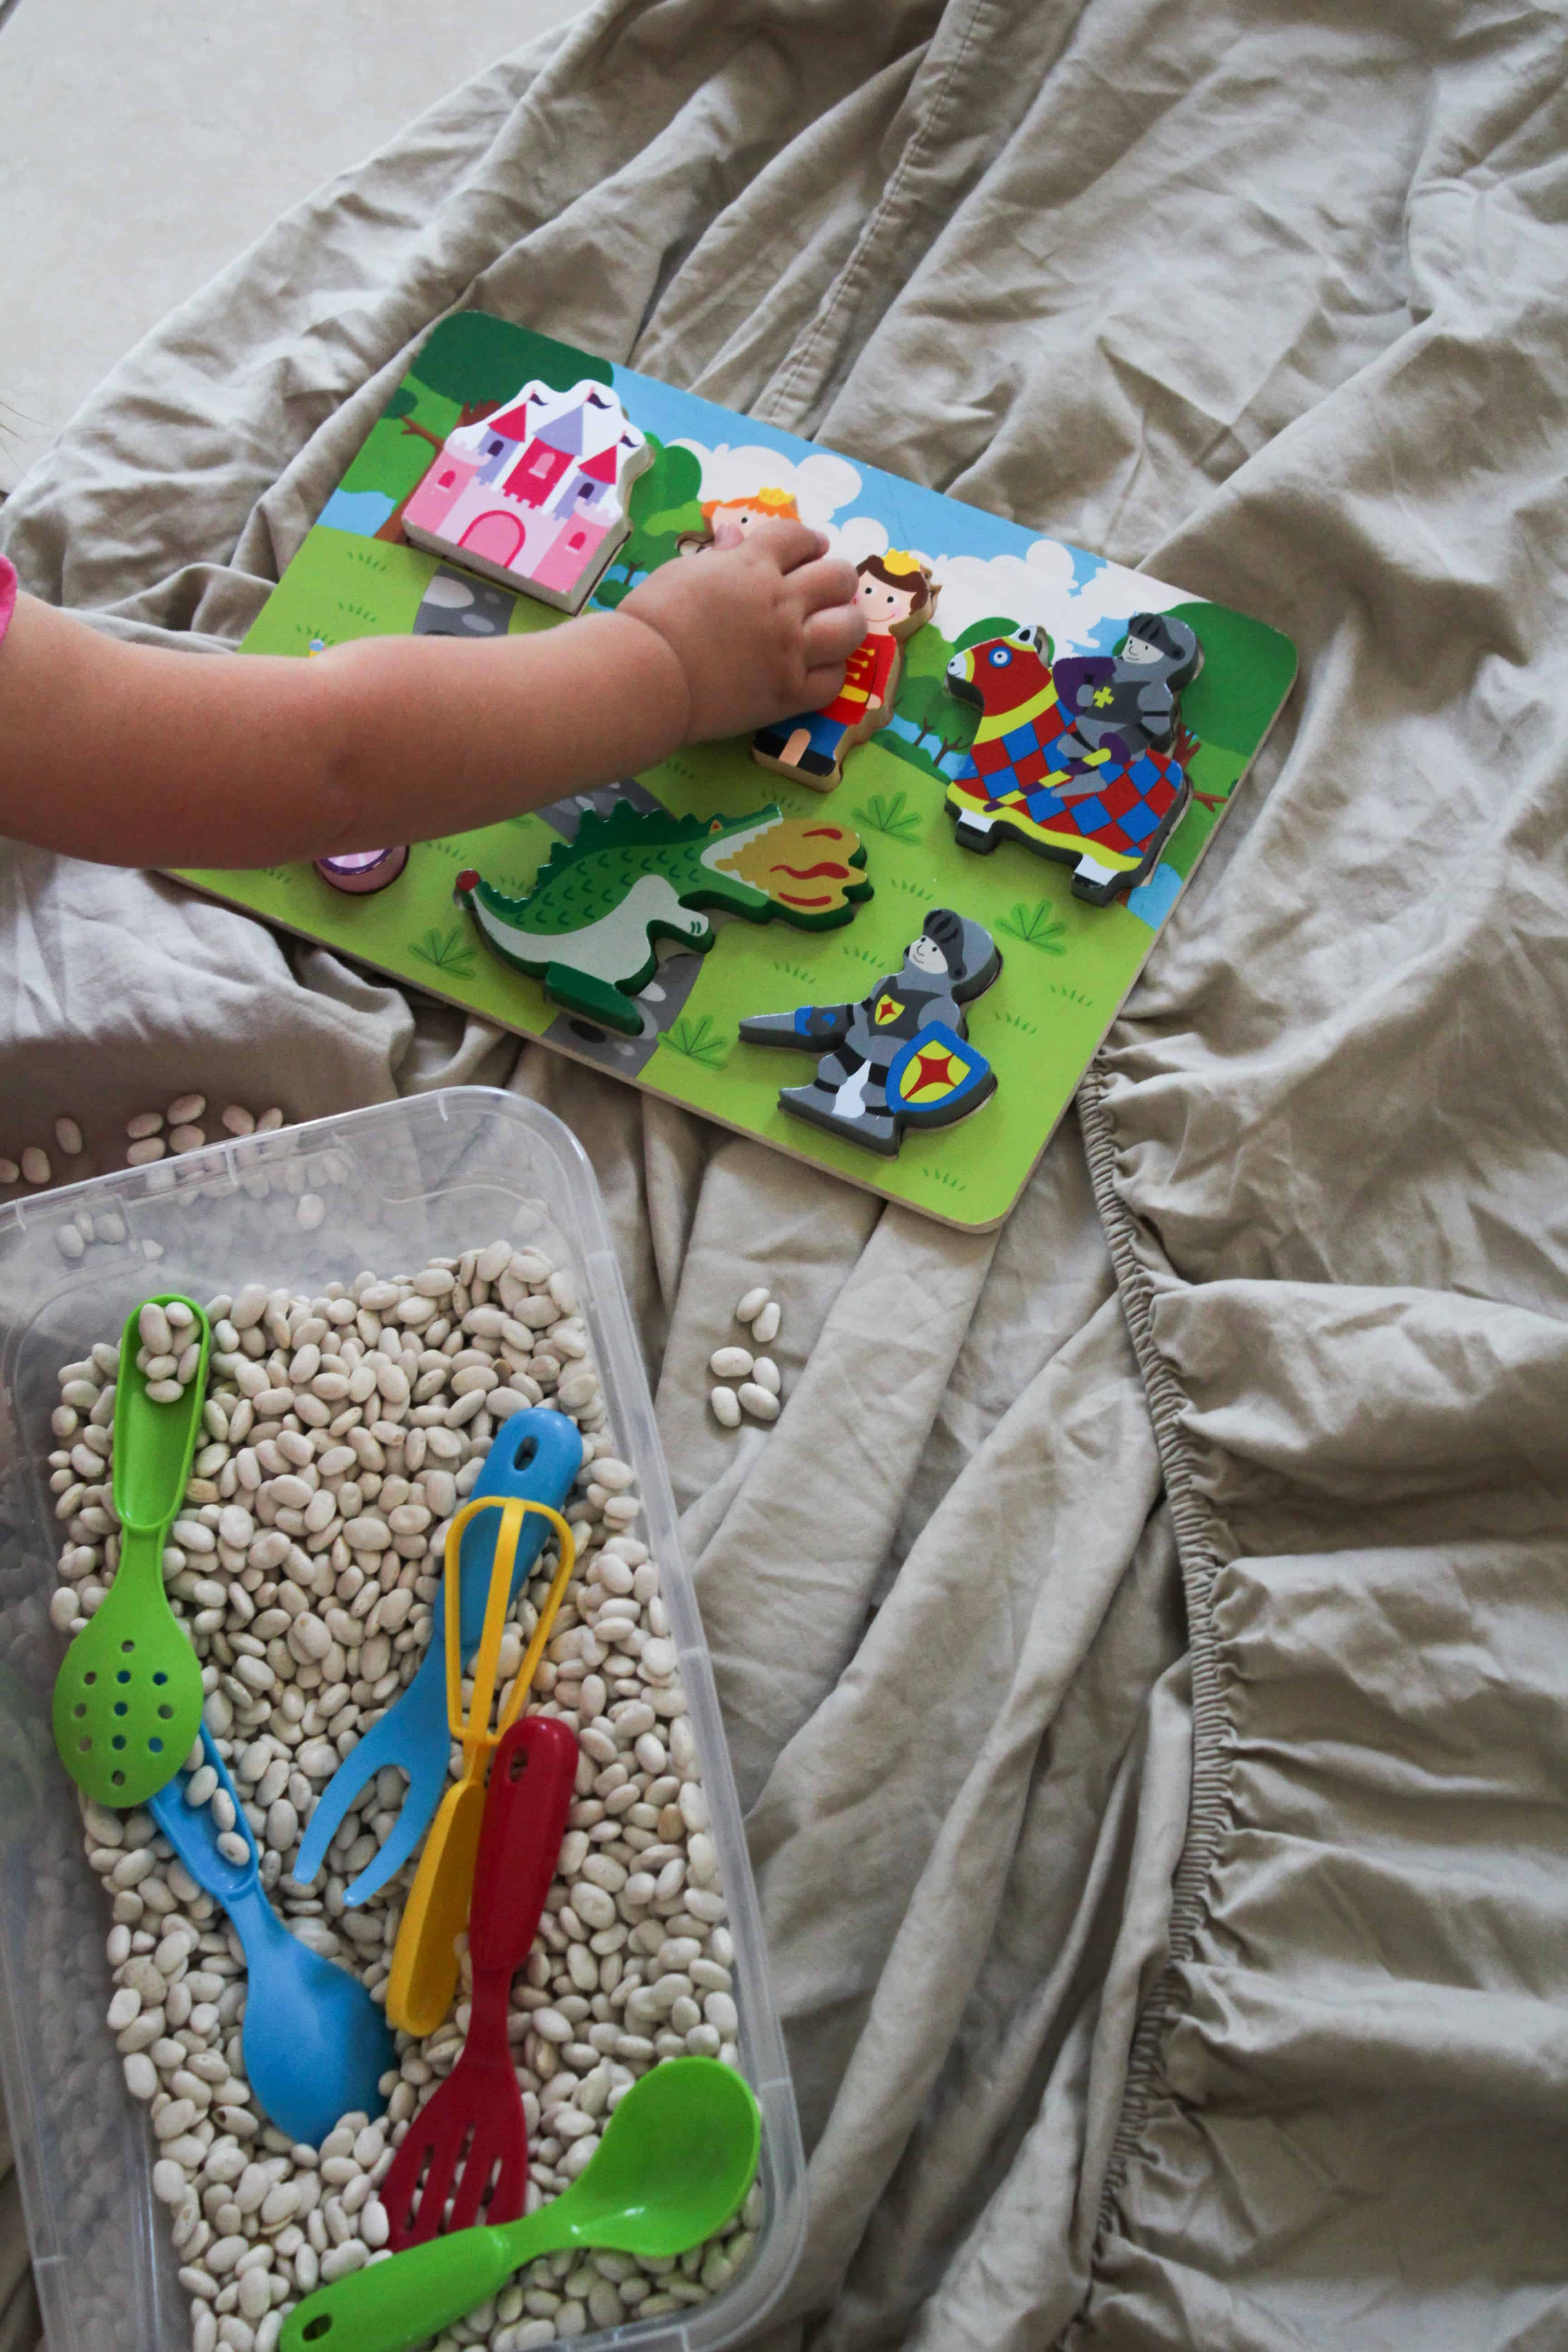 Sensory Play activities for toddlers. Add fun elements like puzzles to the sensory box. Sensory boxes incorporating a few ideas to enhance the play-based-learning experience.